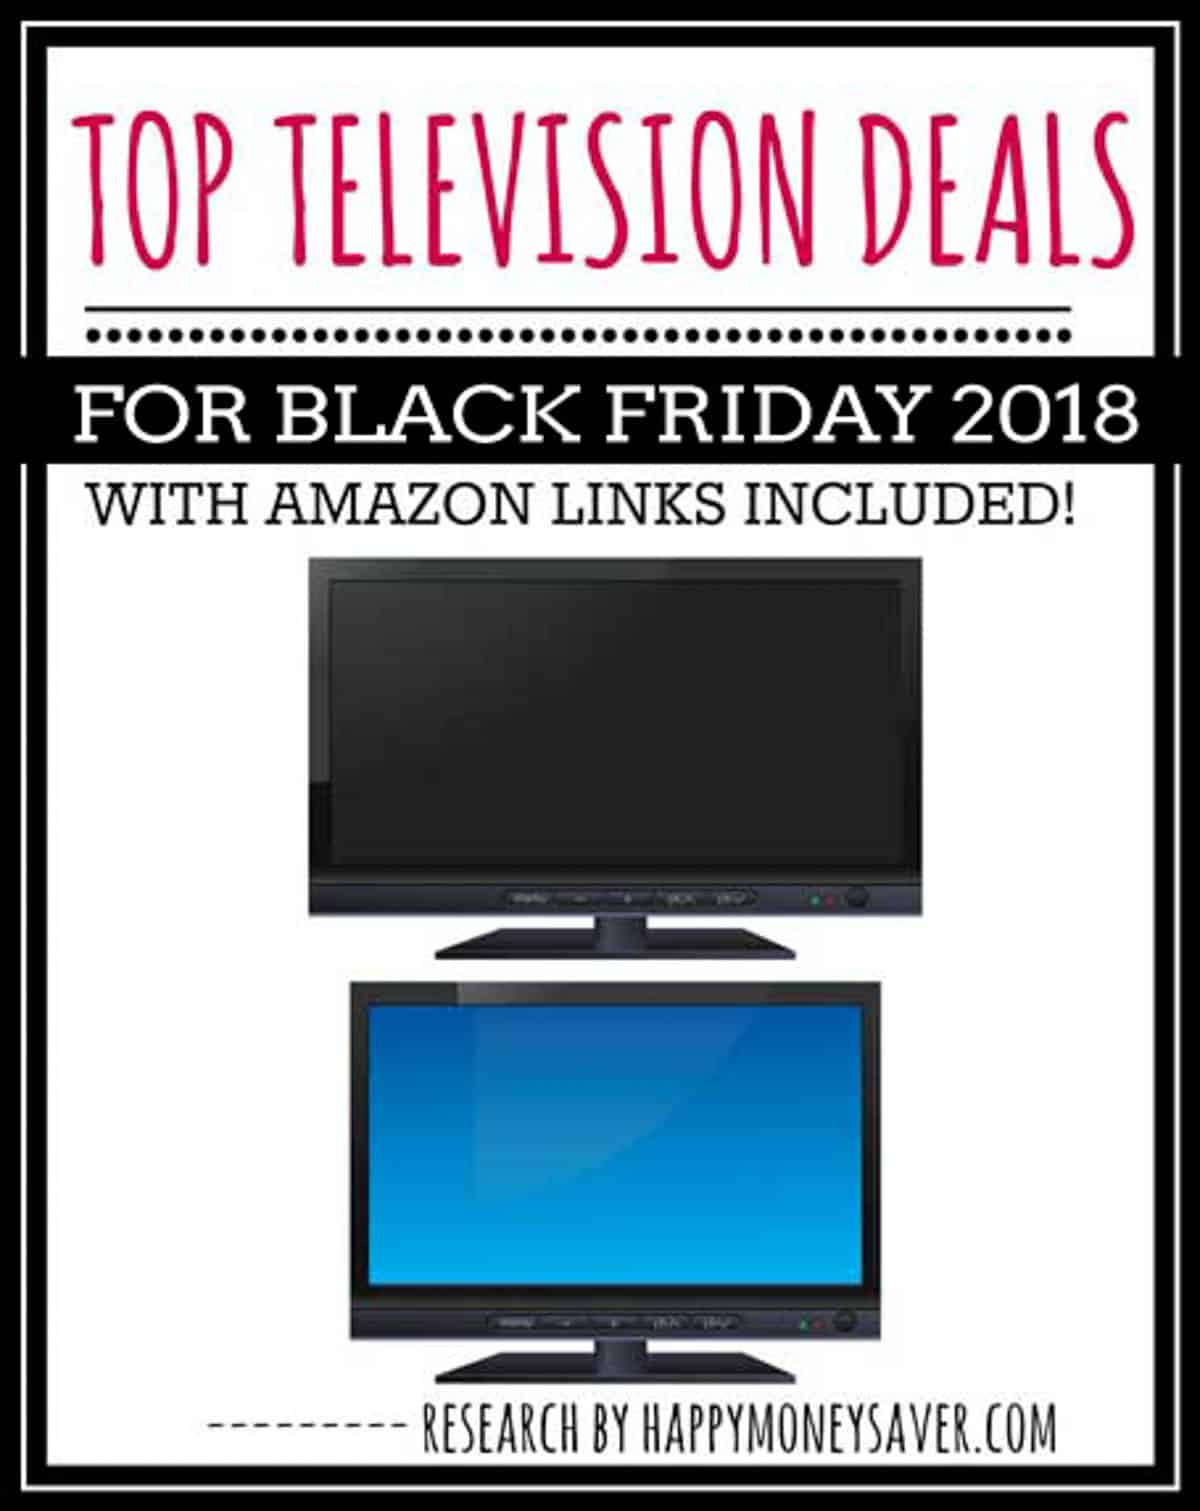 Here is a round up of all the top Black Friday TV Deals 2018 offers! A great way to save money by comparing the deals.